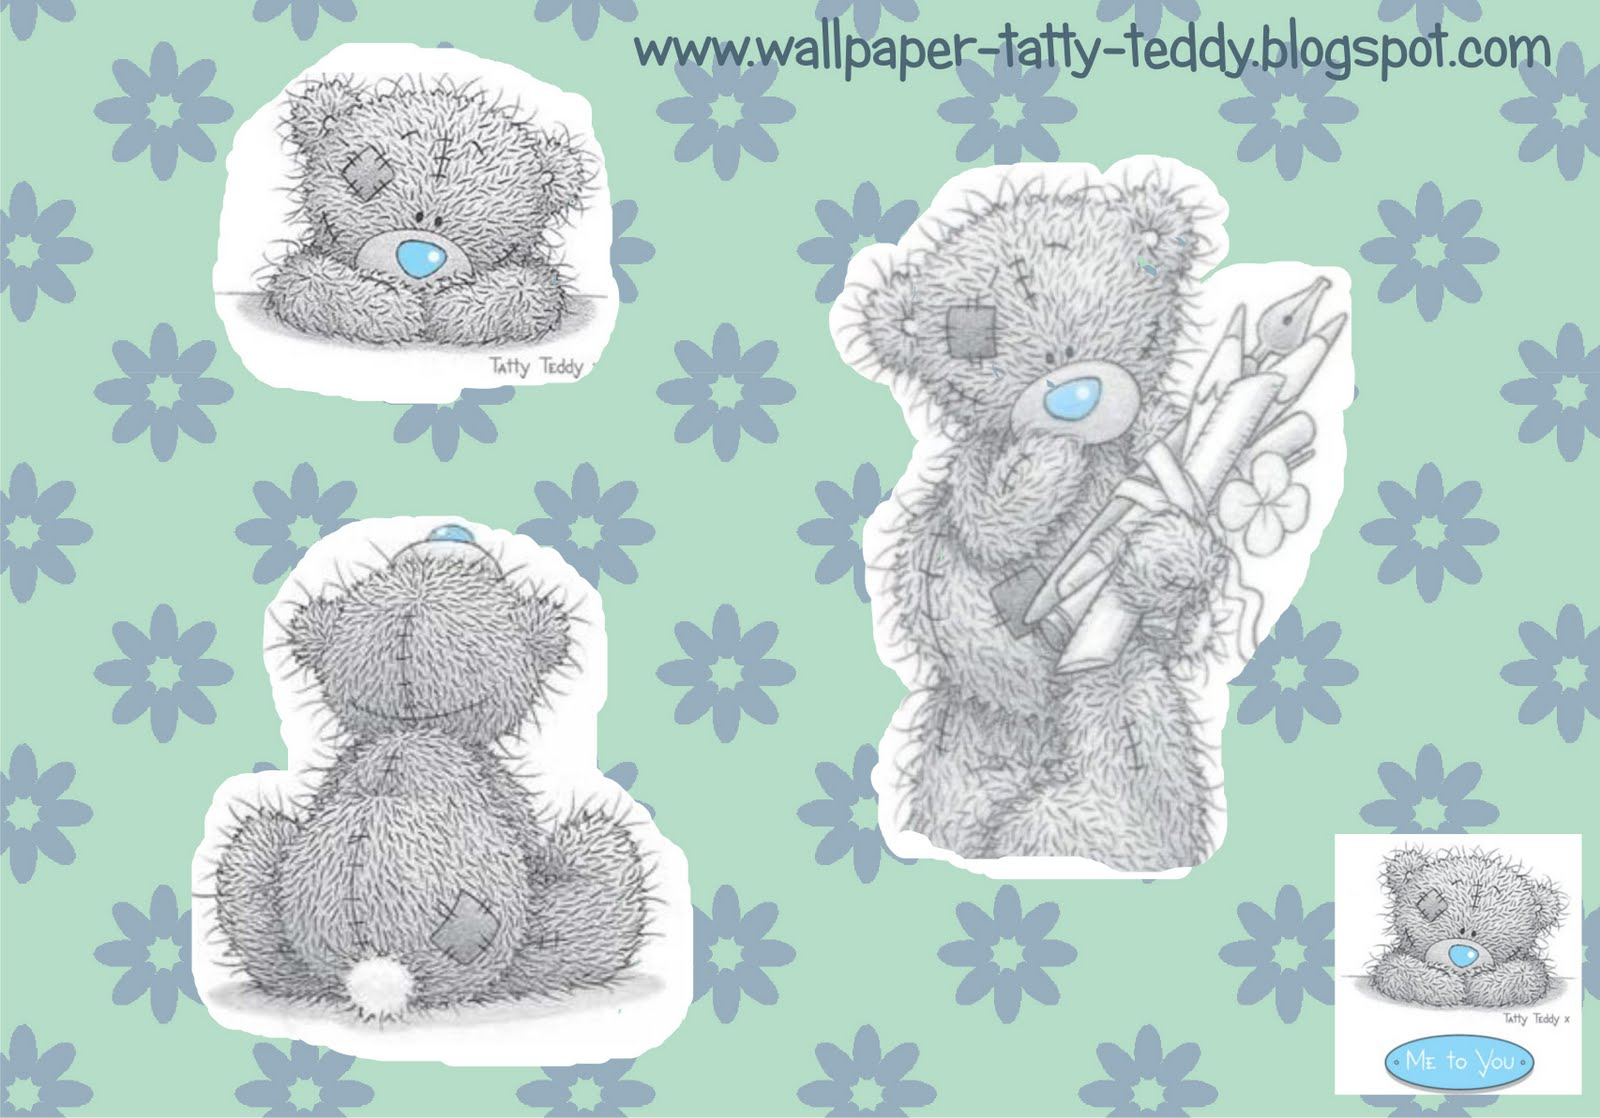 Wallpaper Tatty Teddy